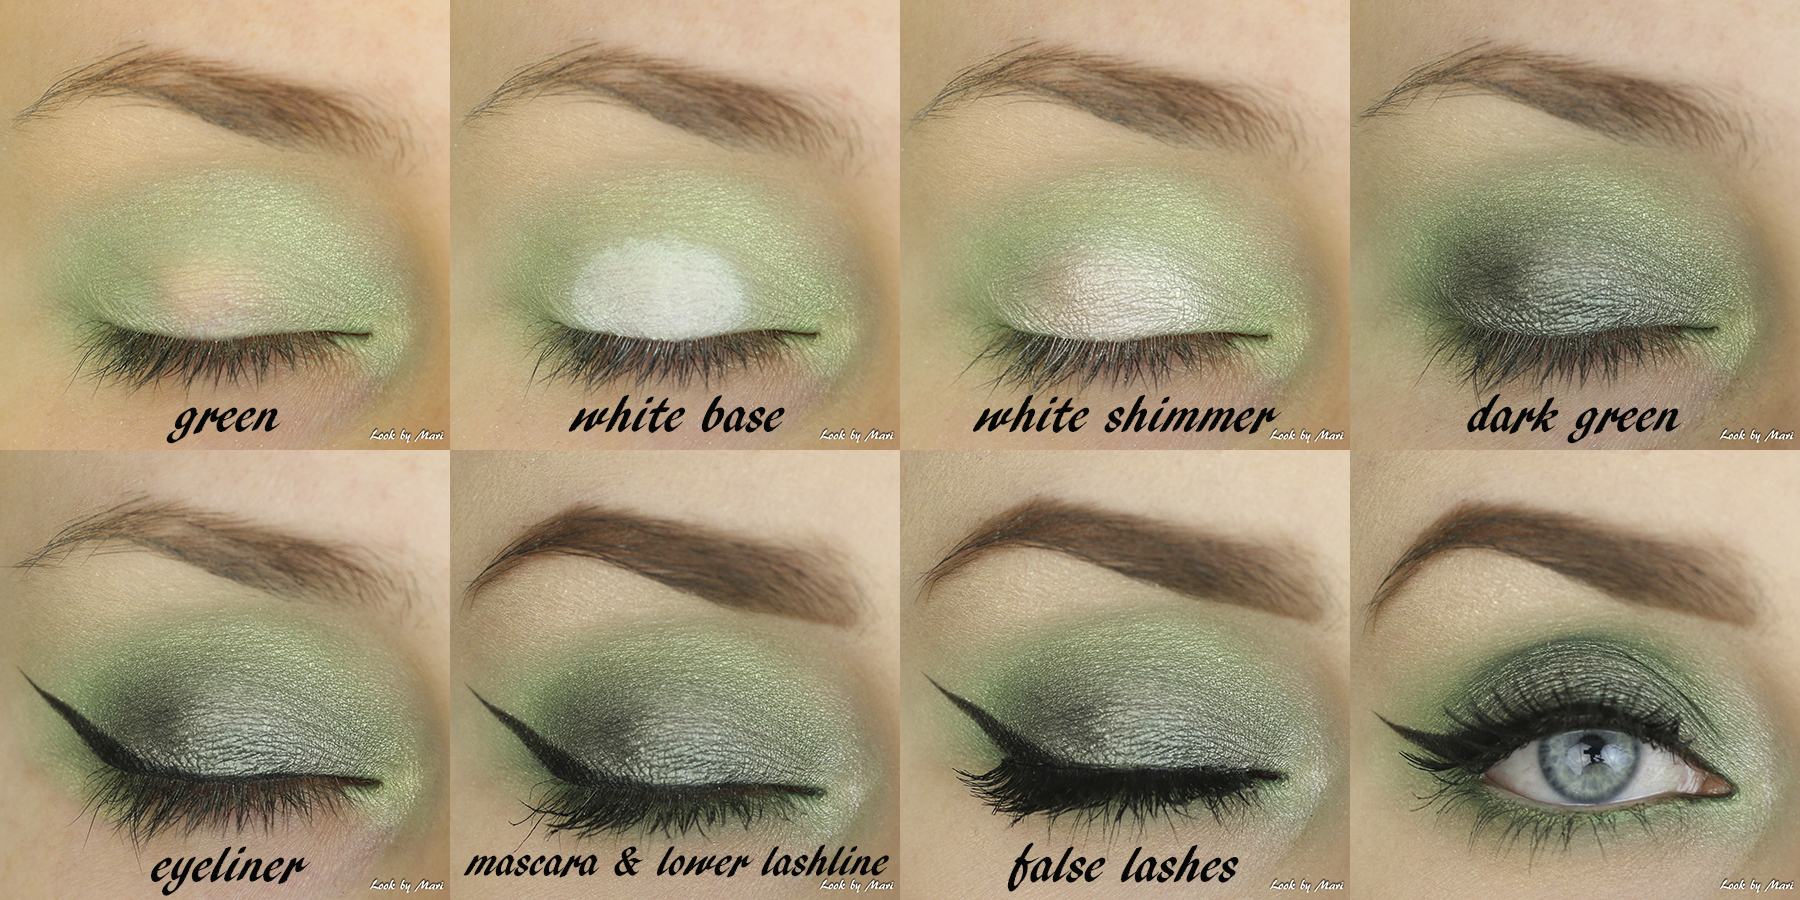 5 green eye makeup smoky eyes tutorial ideas inspo